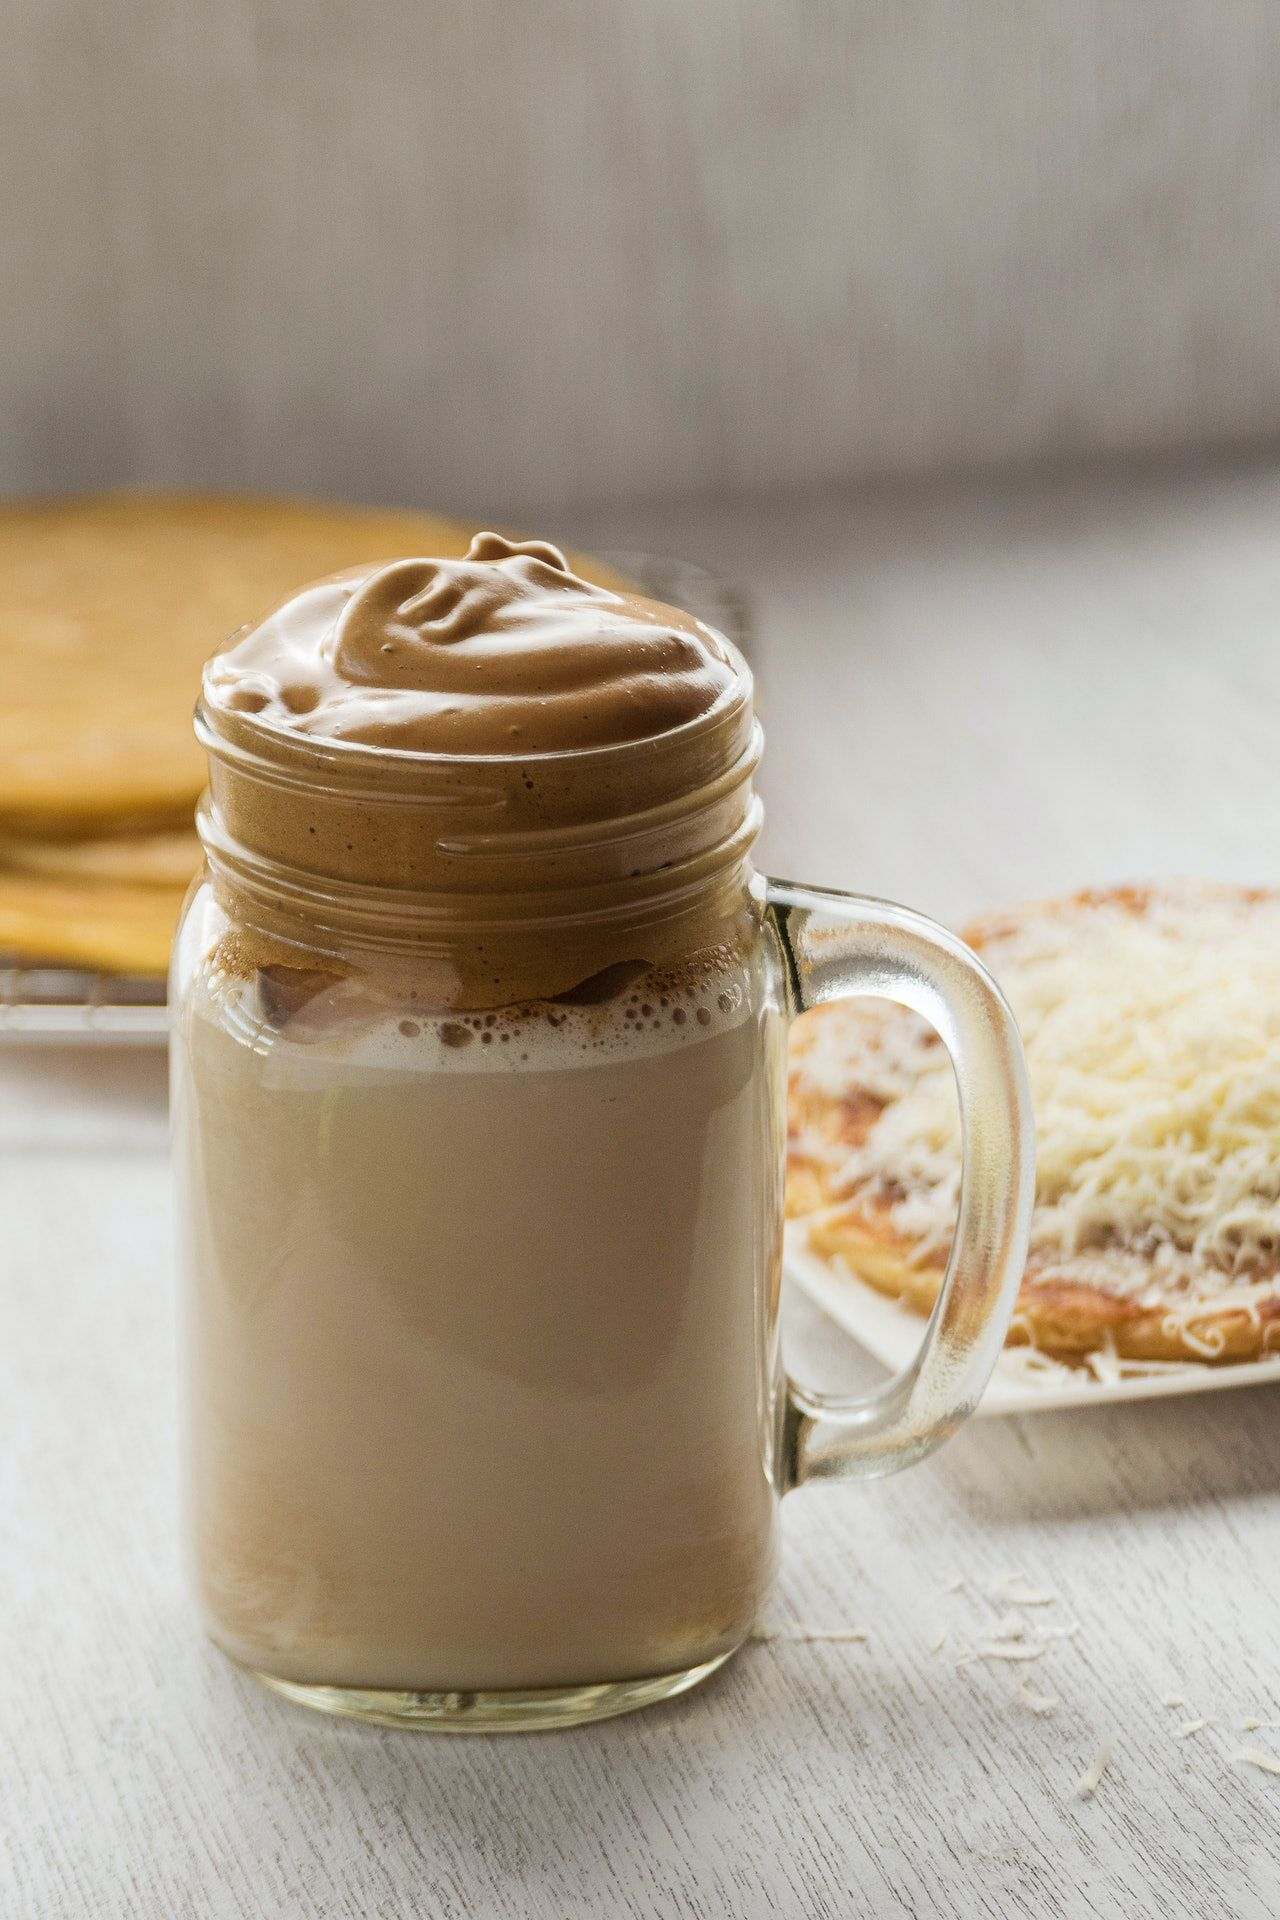 The Fluffy Coffee You've Seen All Over TikTok Only